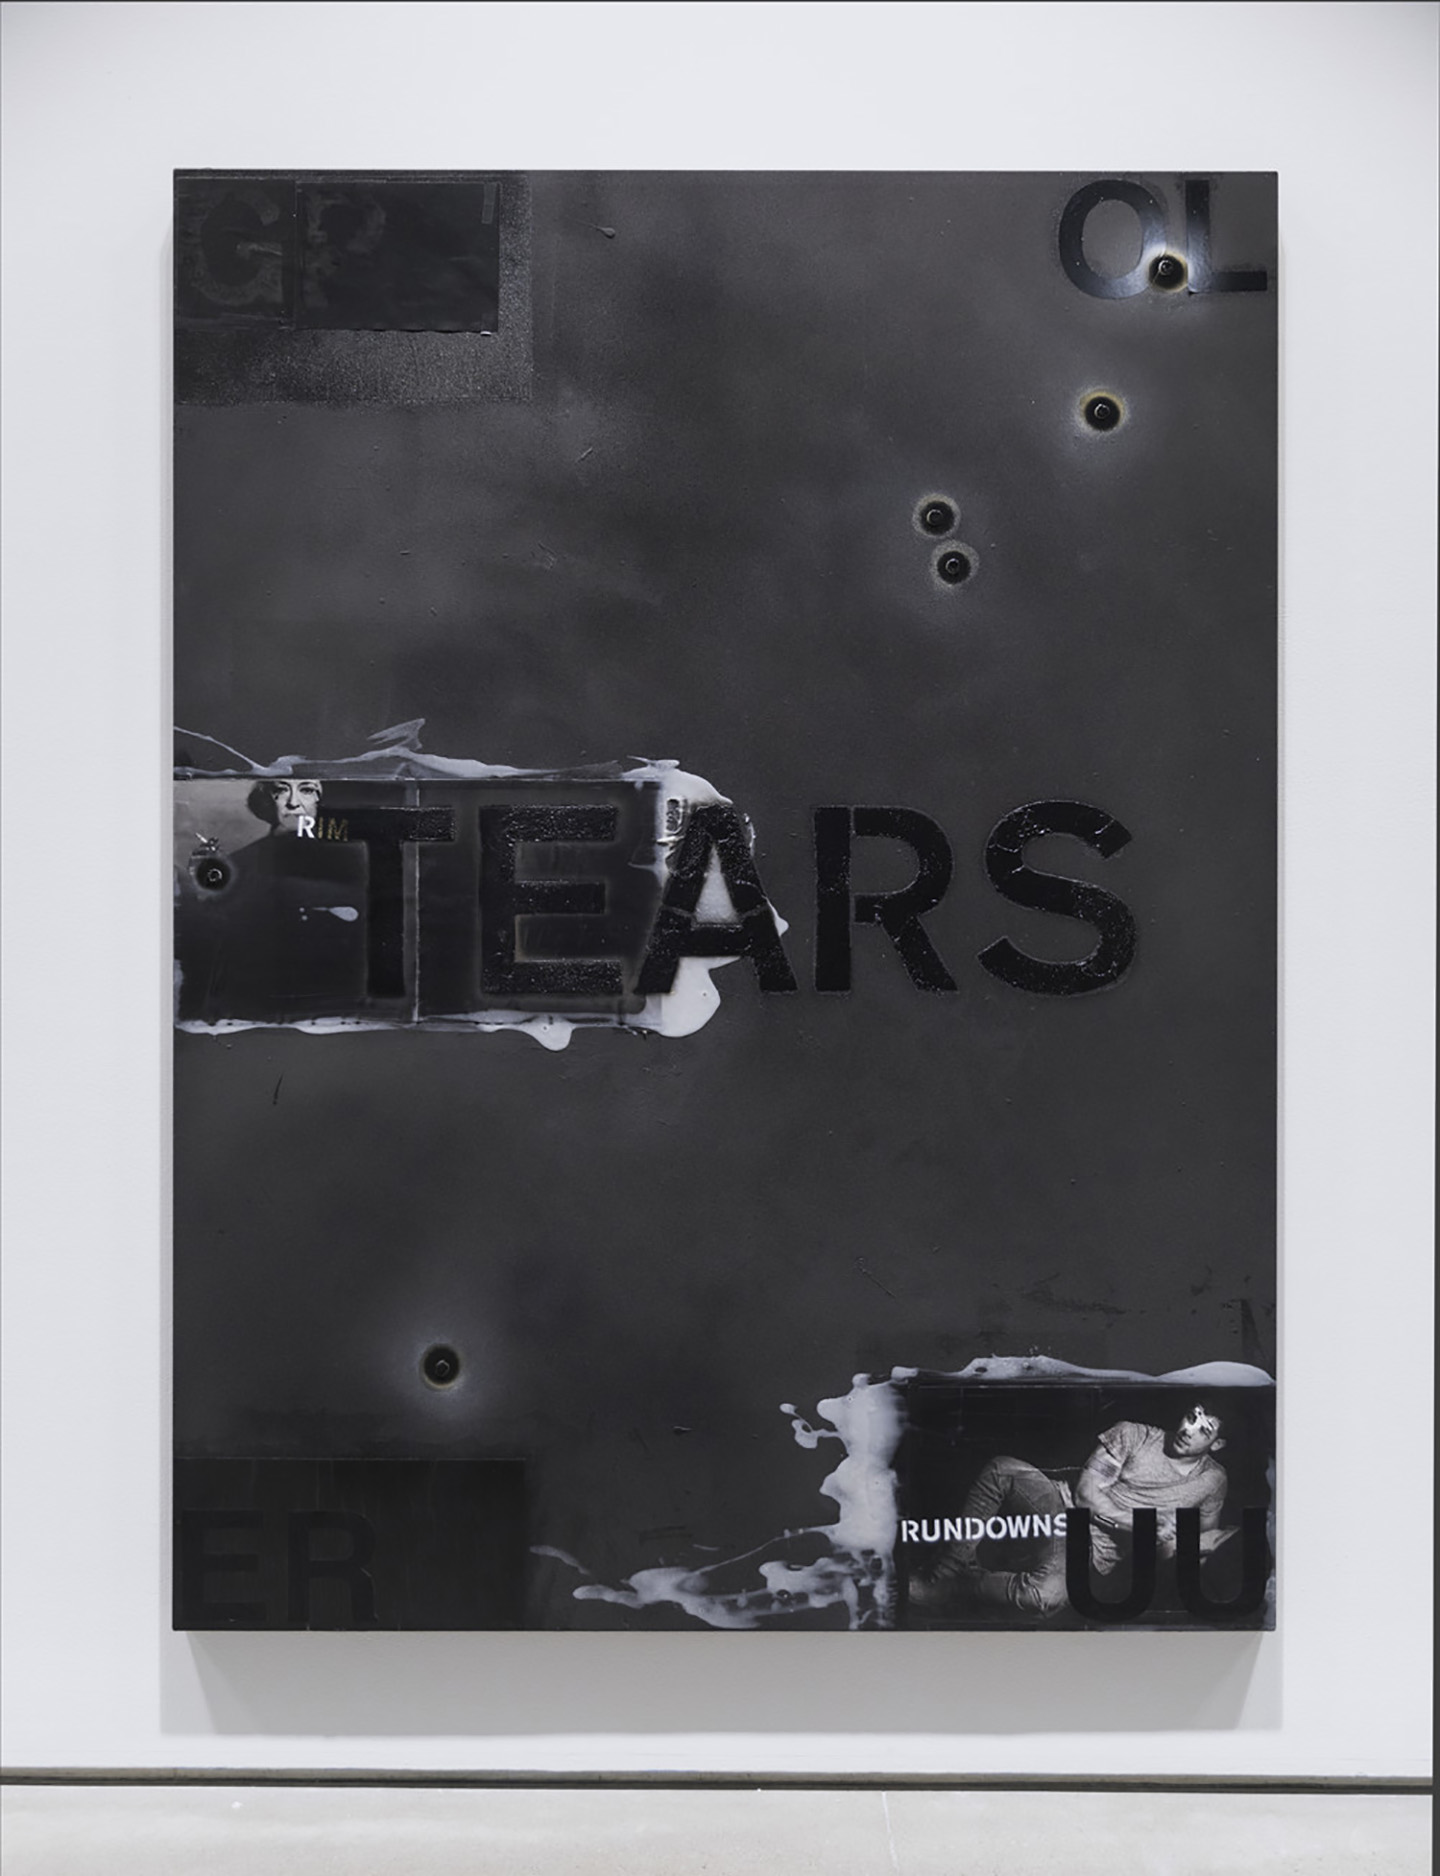 Mark Verabioff Tears At Team Gallery New York Mousse Magazine # Muebles Dolores